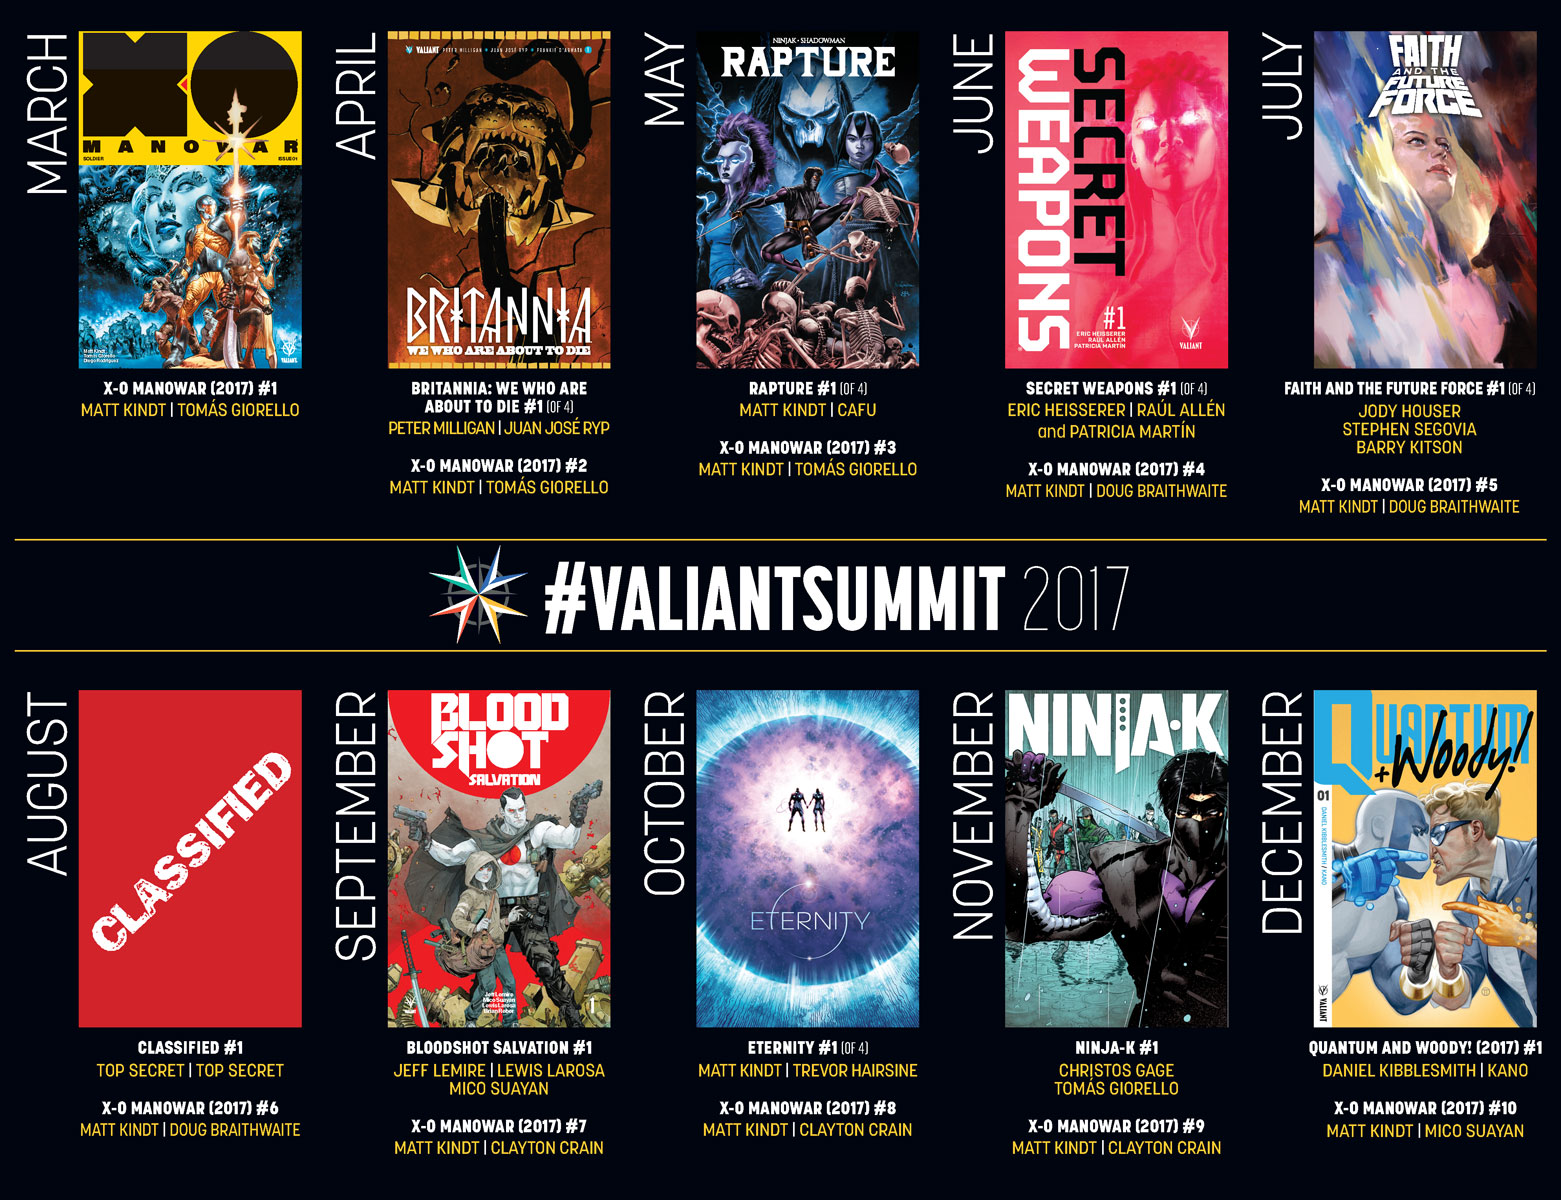 #ValiantSummit 2017: Valiant Unveils a Staggering Line-Up of New Series Spanning 2017 with BLOODSHOT SALVATION, NINJA-K, QUANTUM AND WOODY!, and More!